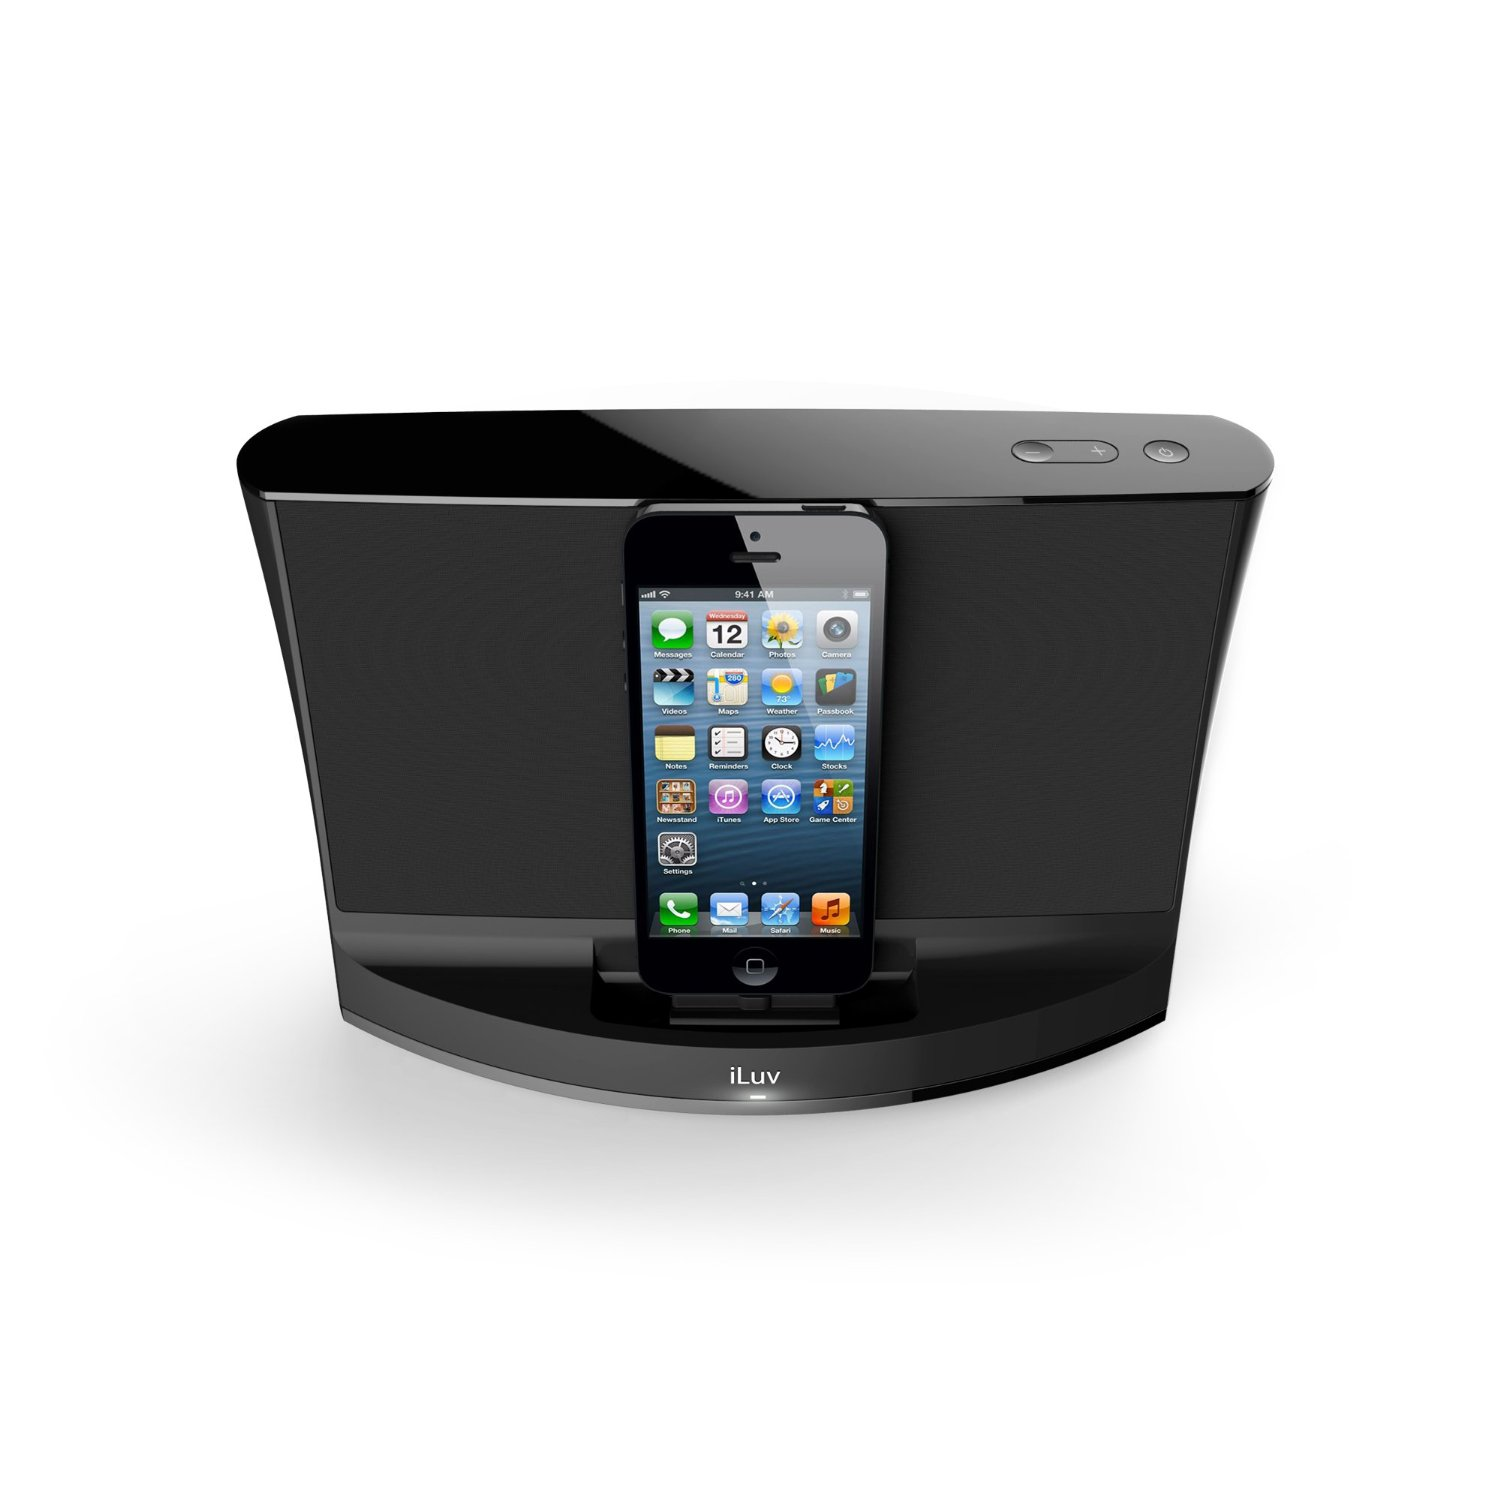 iluv aud 3 9w speaker lightning docking station for iphone. Black Bedroom Furniture Sets. Home Design Ideas